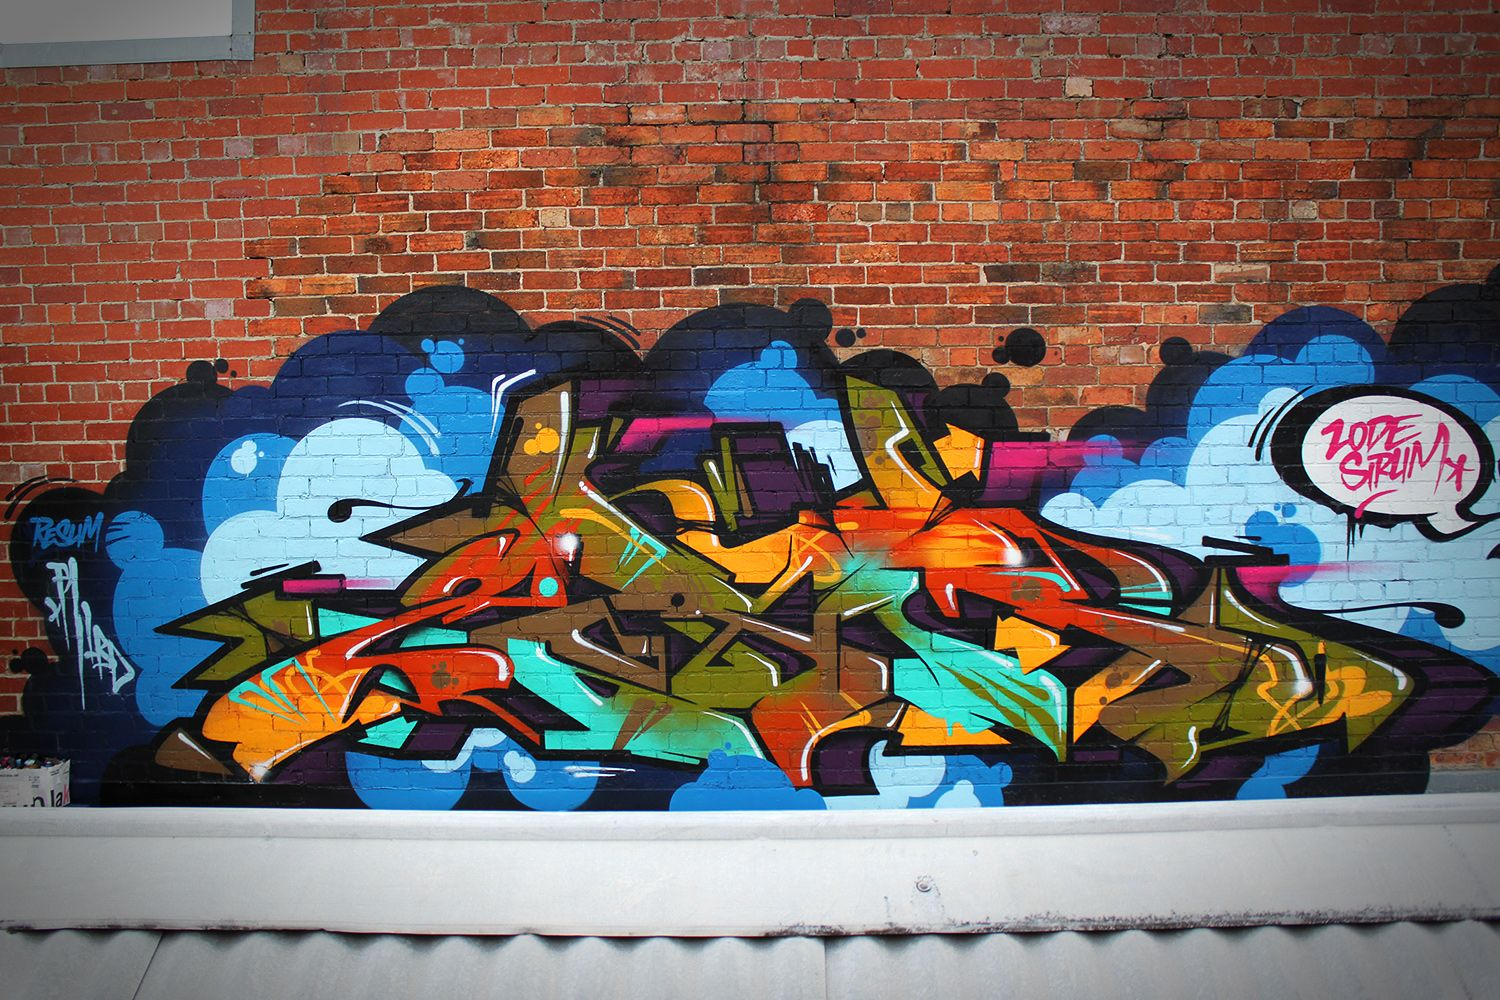 Bien-aimé sirum_graffiti-wall-art_68 | Street Art | Pinterest | Graffiti  BV69